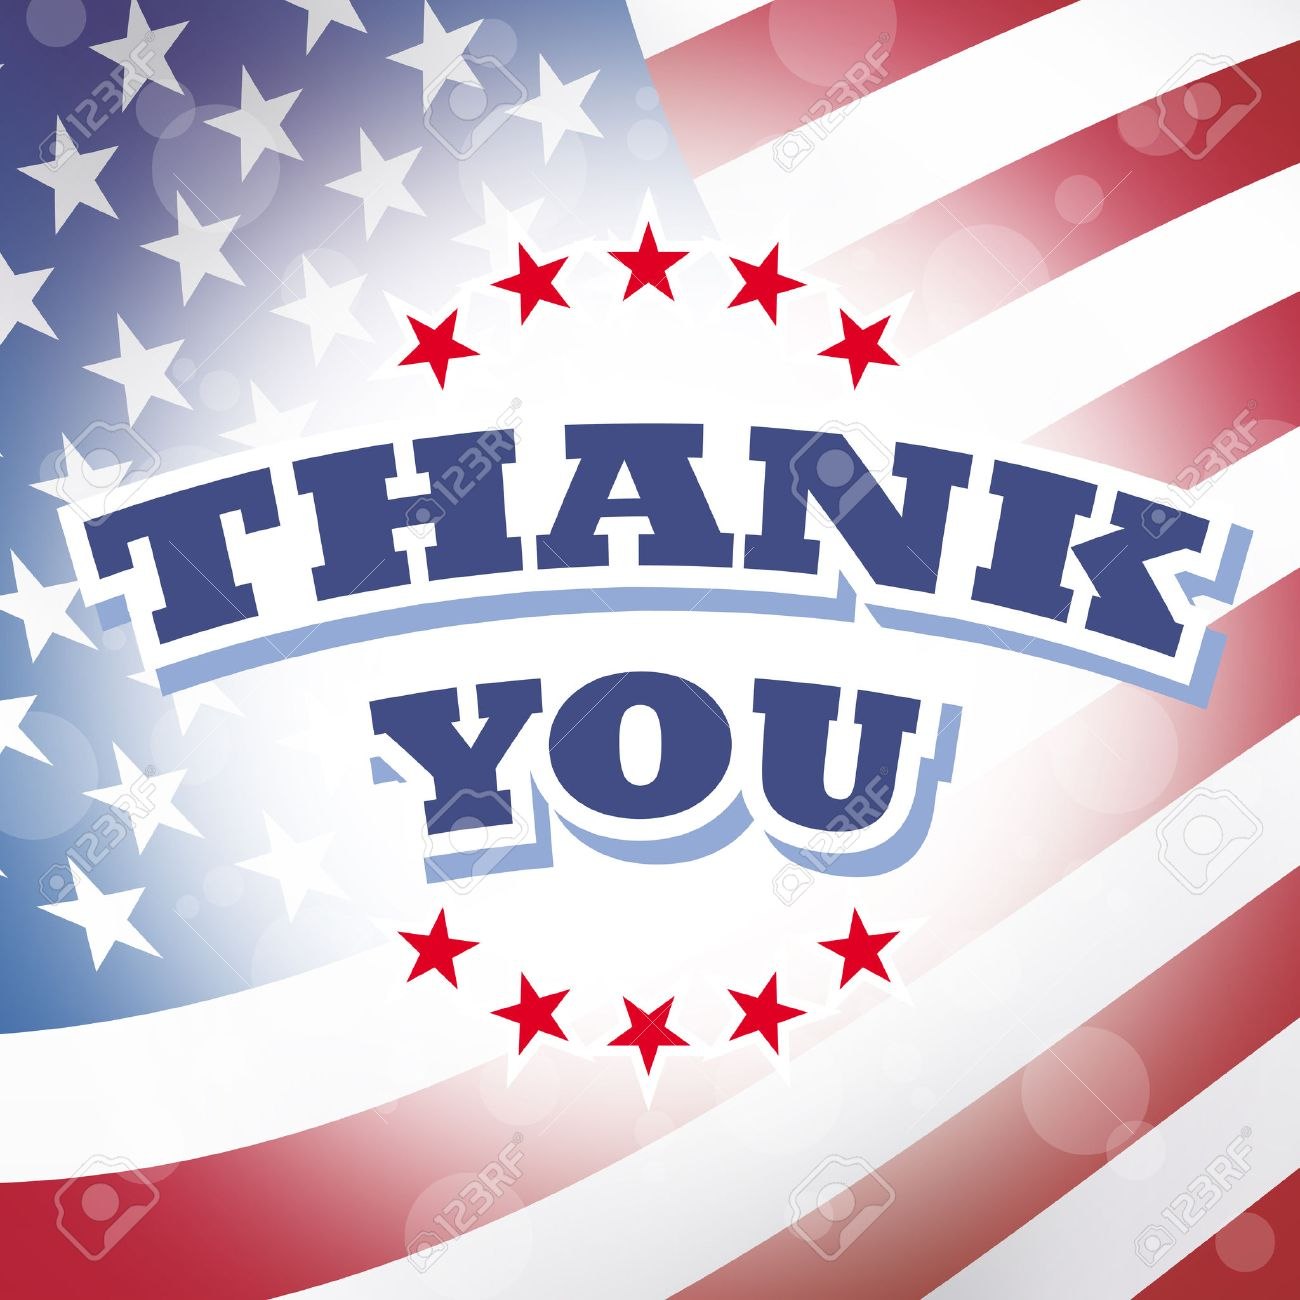 Veterans day stock photos royalty free business images thank you card american flag background kristyandbryce Choice Image